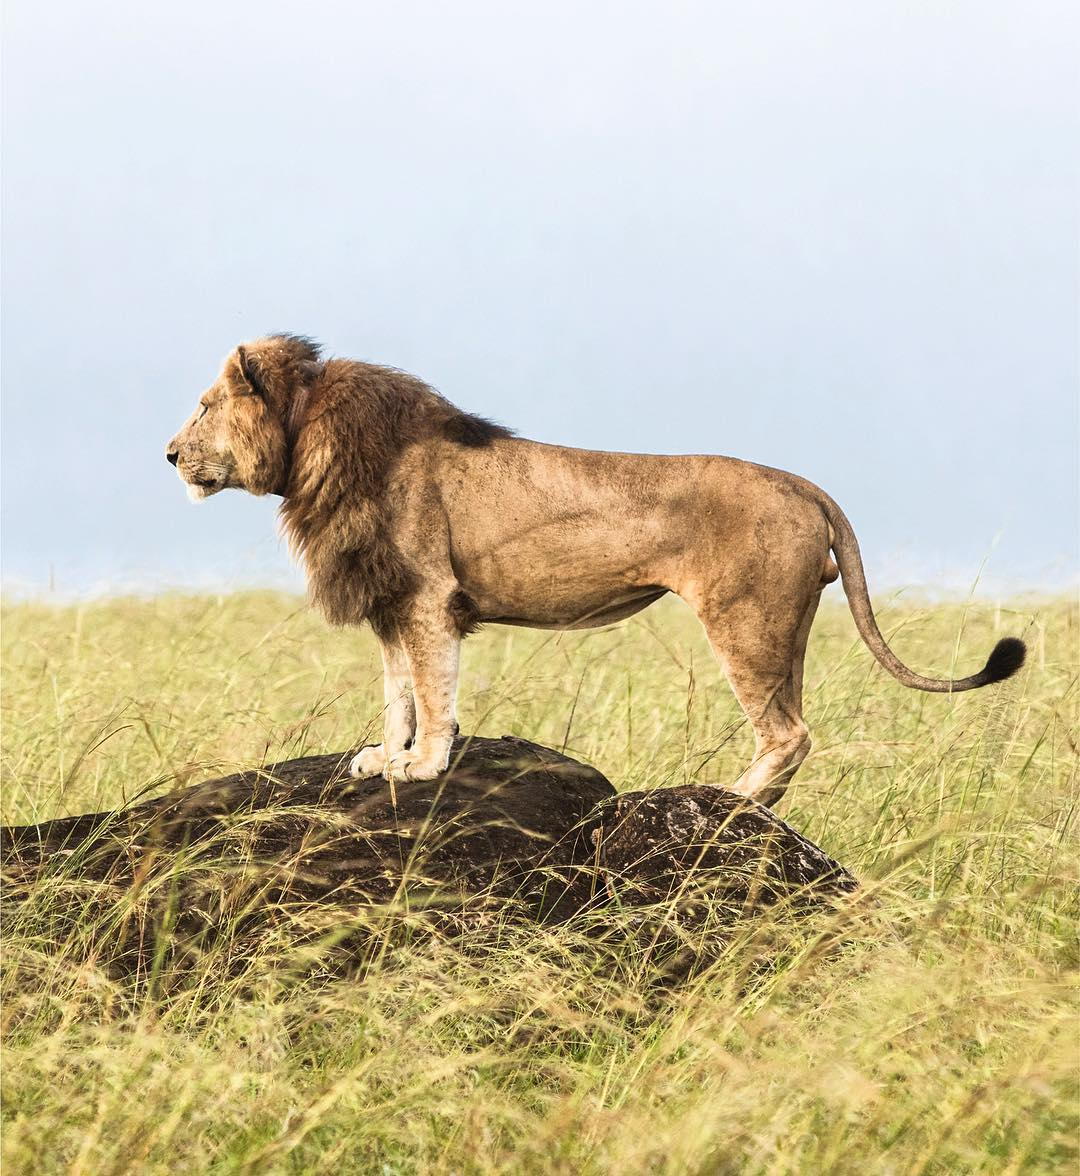 A dominant male lion surveying his domain in Kidepo Valley National Park.  IG/andreayrazu #WildlifeWednesday #Uganda<br>http://pic.twitter.com/cNmrV6pww8